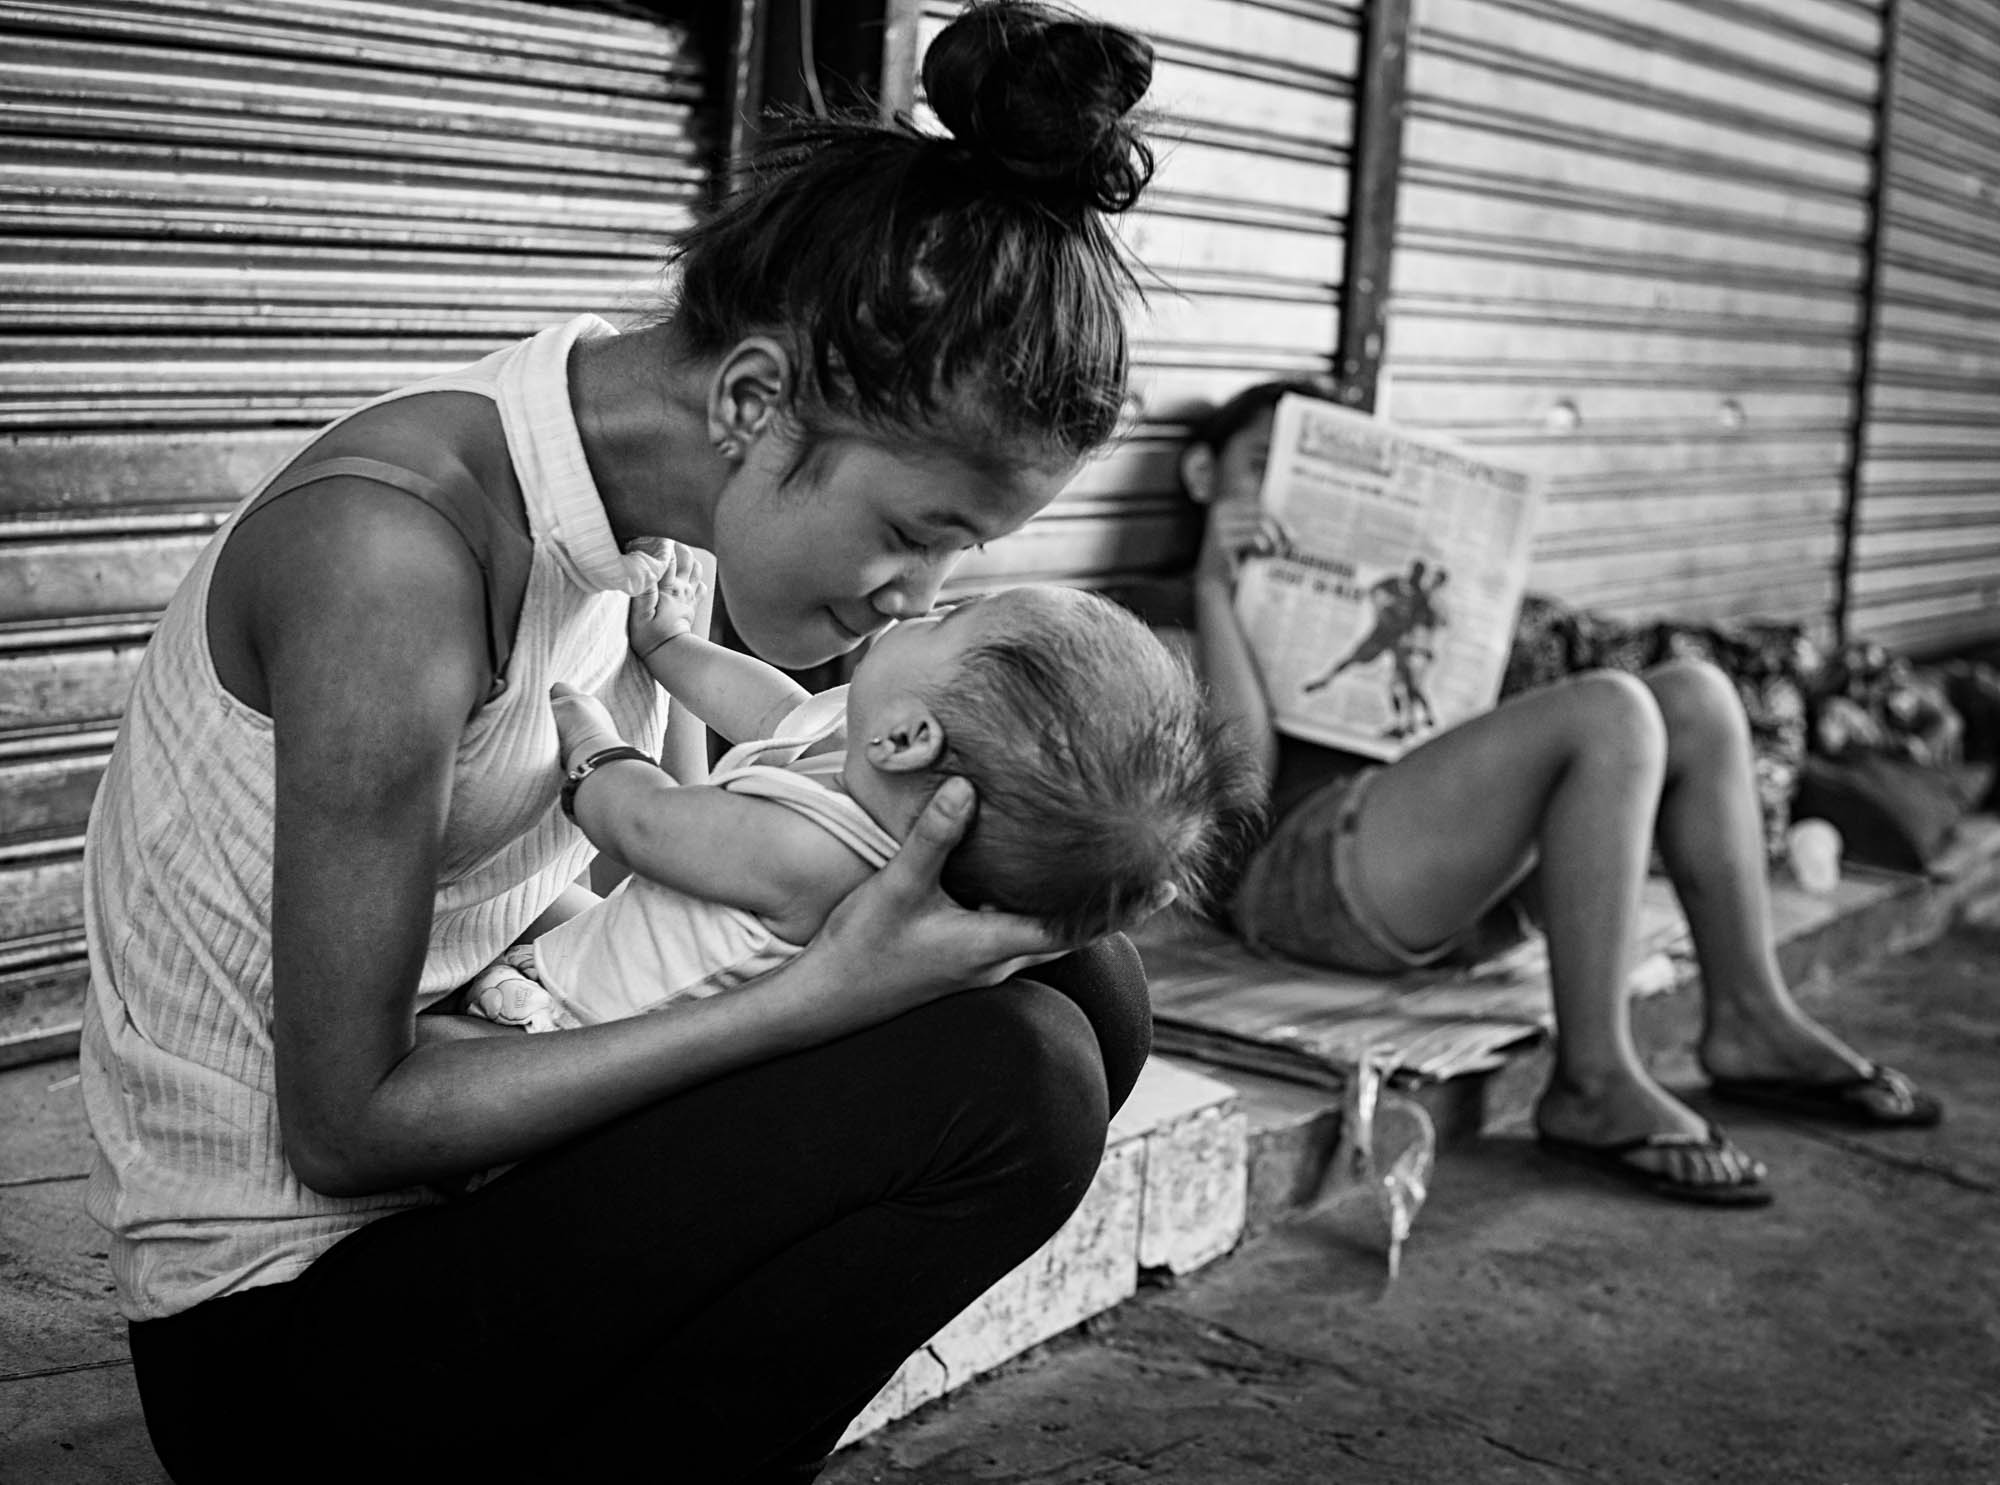 A young mother plays with her child on the street of Manila, Philippines